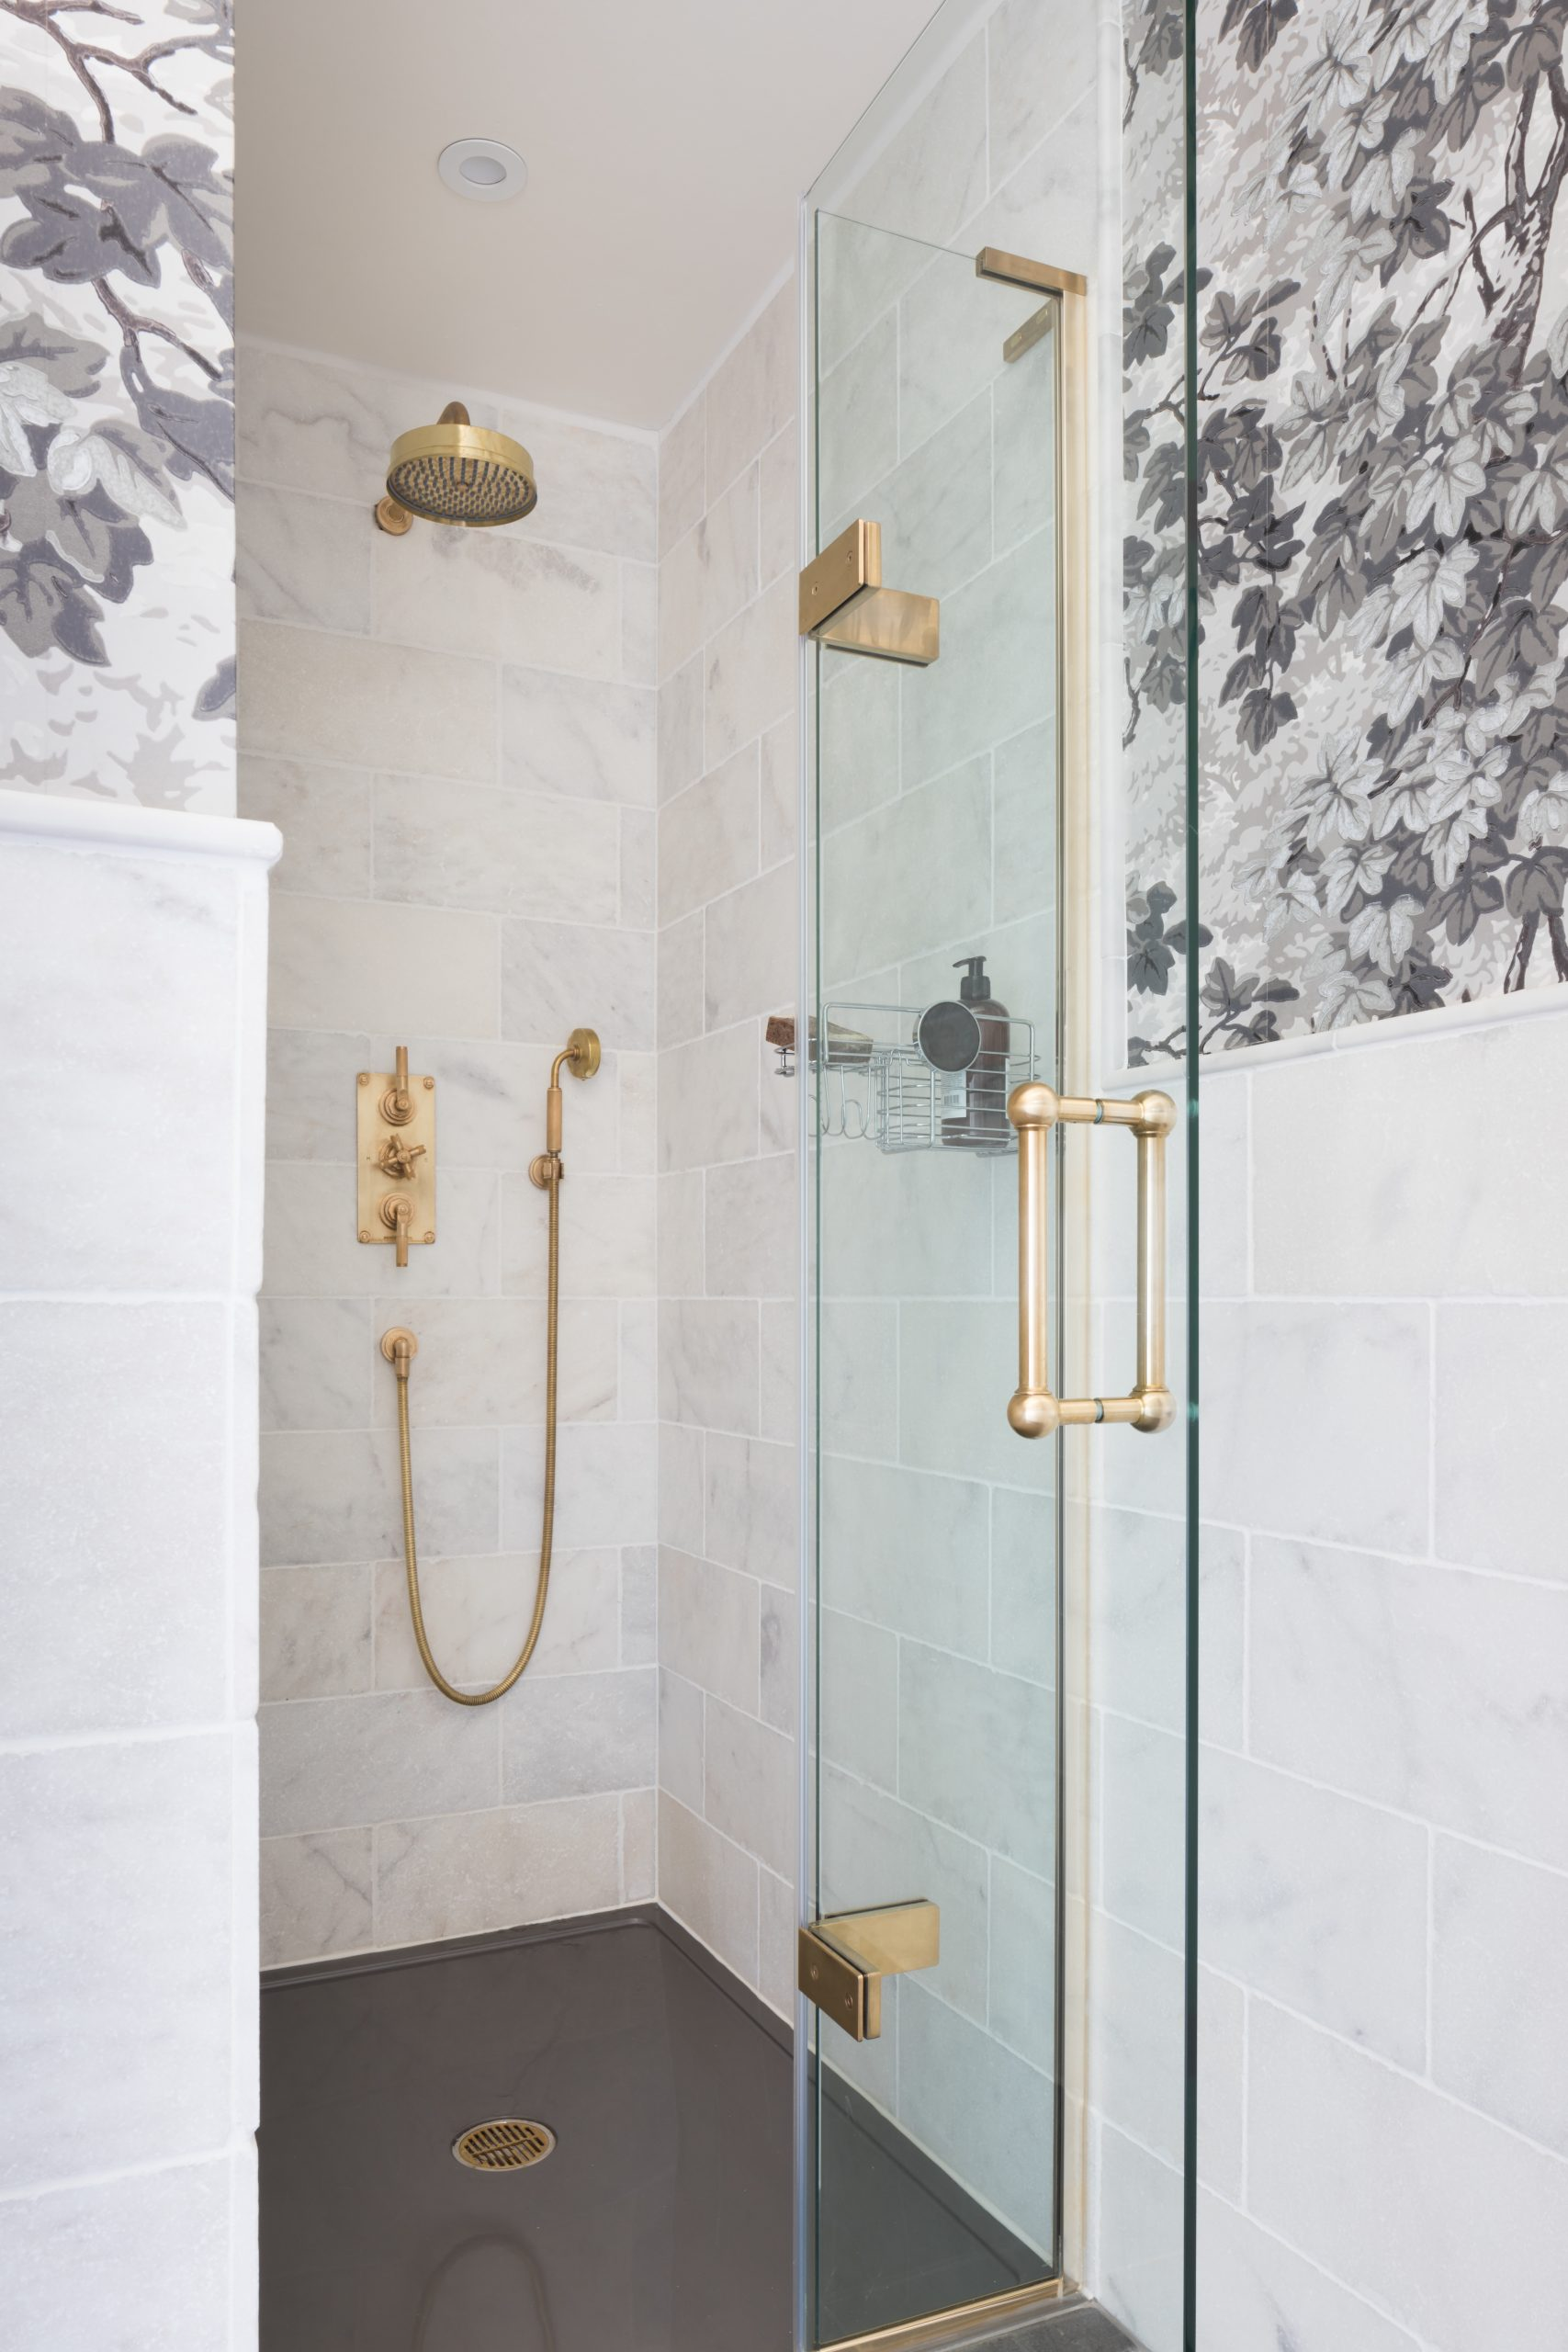 Shower room ideas. C.P. Hart